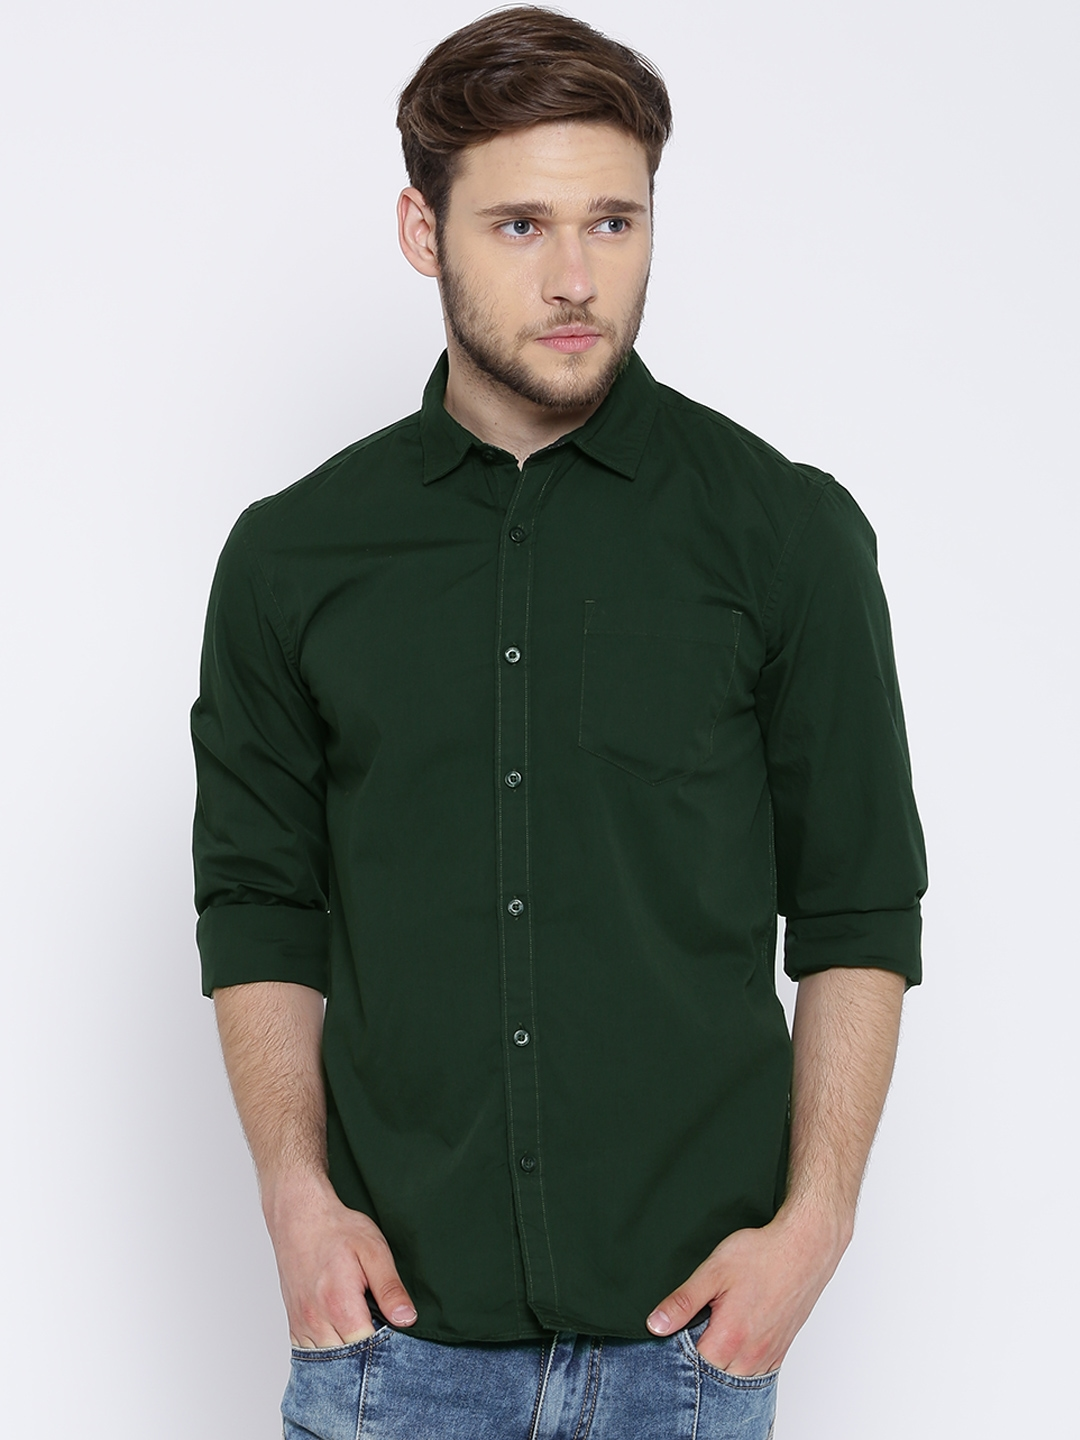 Dark green shirt for men images Emerald green mens dress shirt